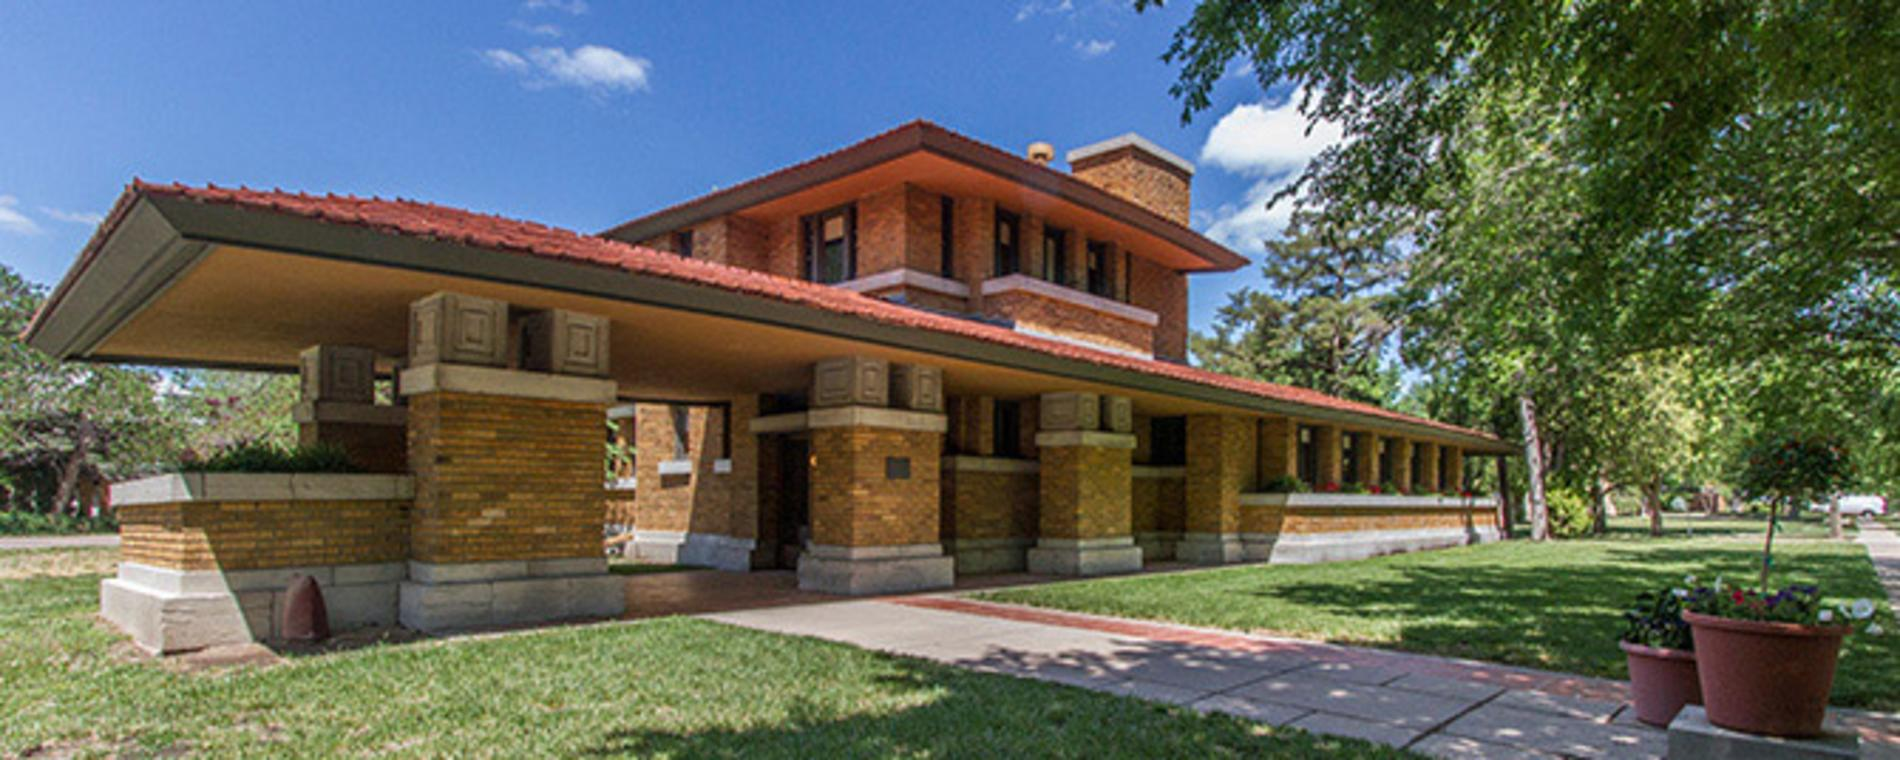 Lloyd Frank Wright Houses where to see frank lloyd wright innovation in wichita